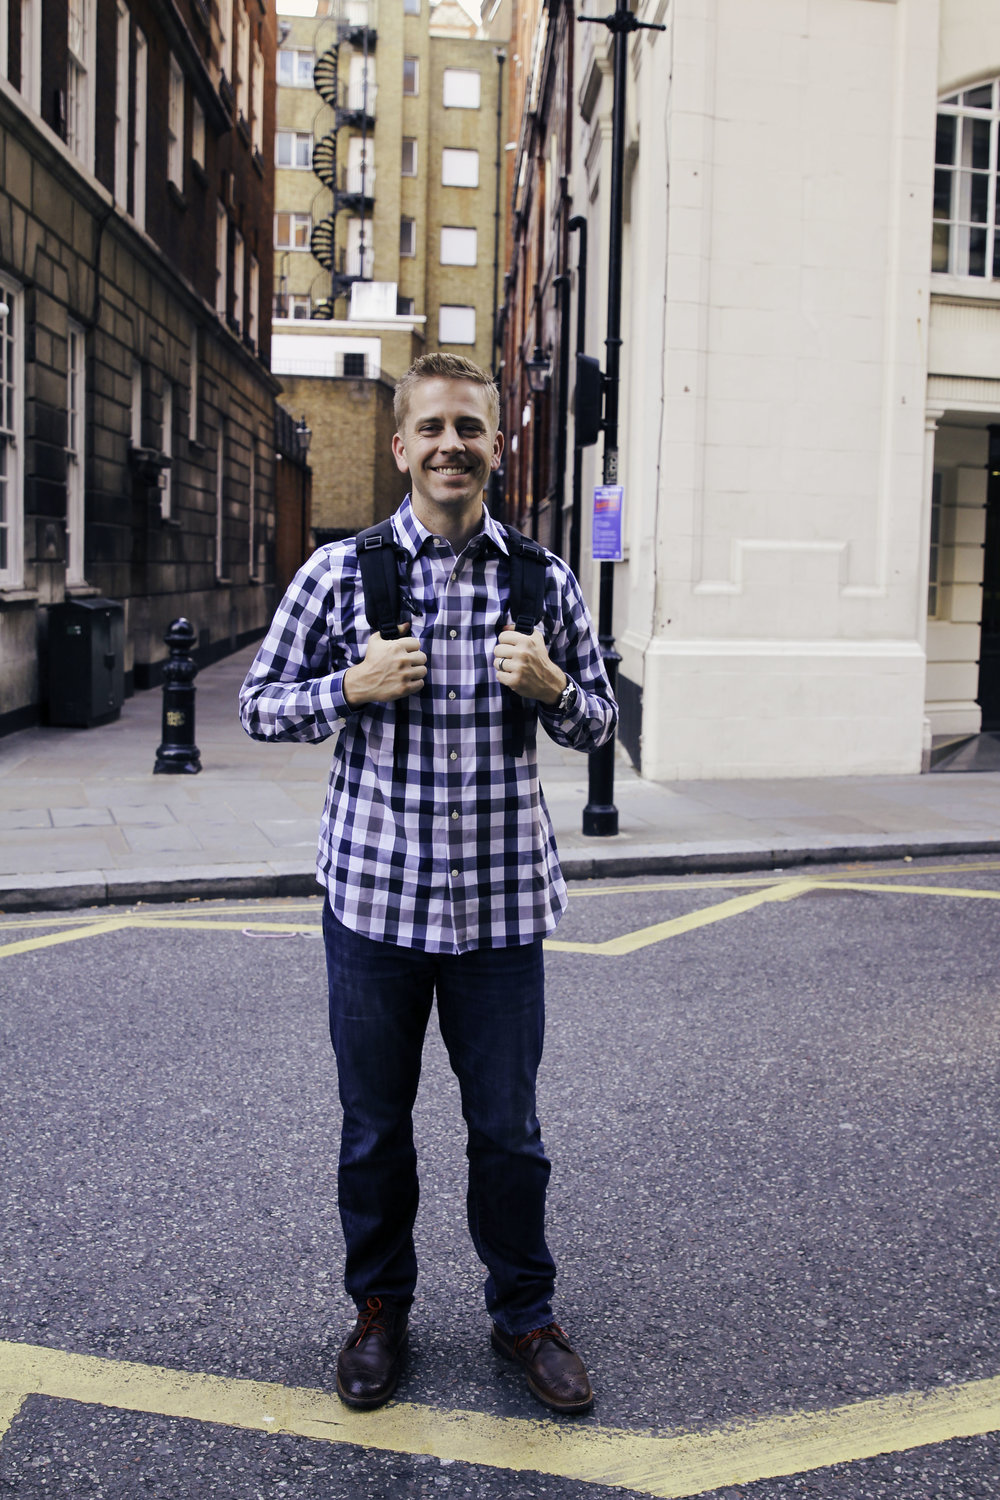 Cute man. He wore that backpack around for me, because it held all our camera gear. He's the kindest pack mule.